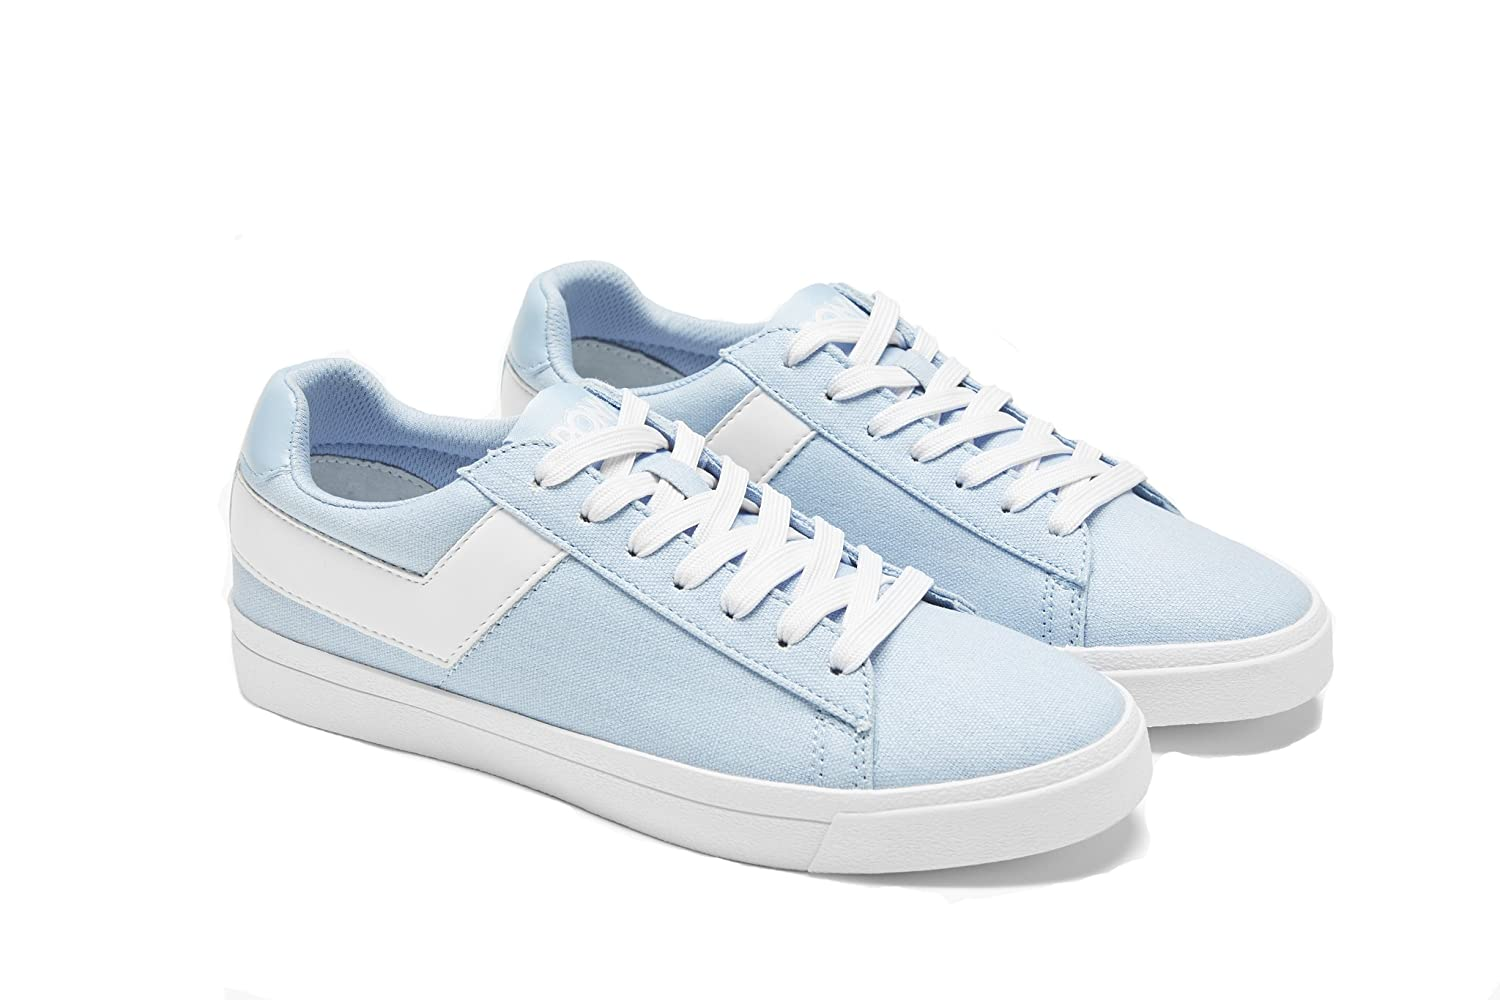 Pony Women's Top-Star-Lo-Core-Canvas Sneakers Shoes B07D1T6J8T 8.5 B(M) US|Ice Blue White